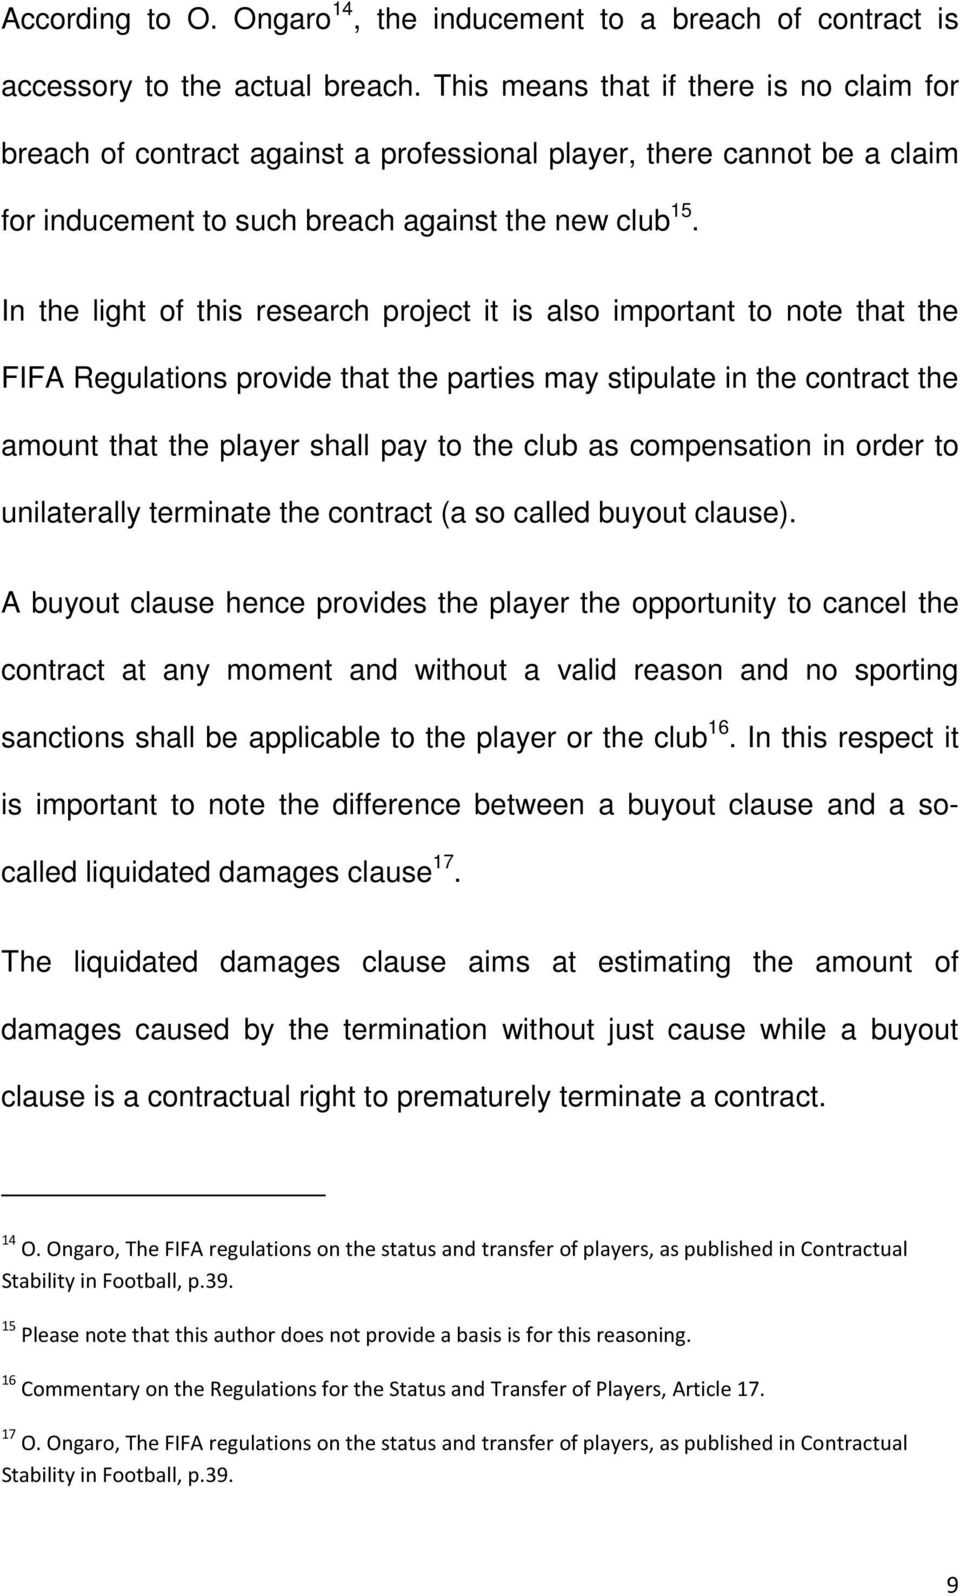 In the light of this research project it is also important to note that the FIFA Regulations provide that the parties may stipulate in the contract the amount that the player shall pay to the club as